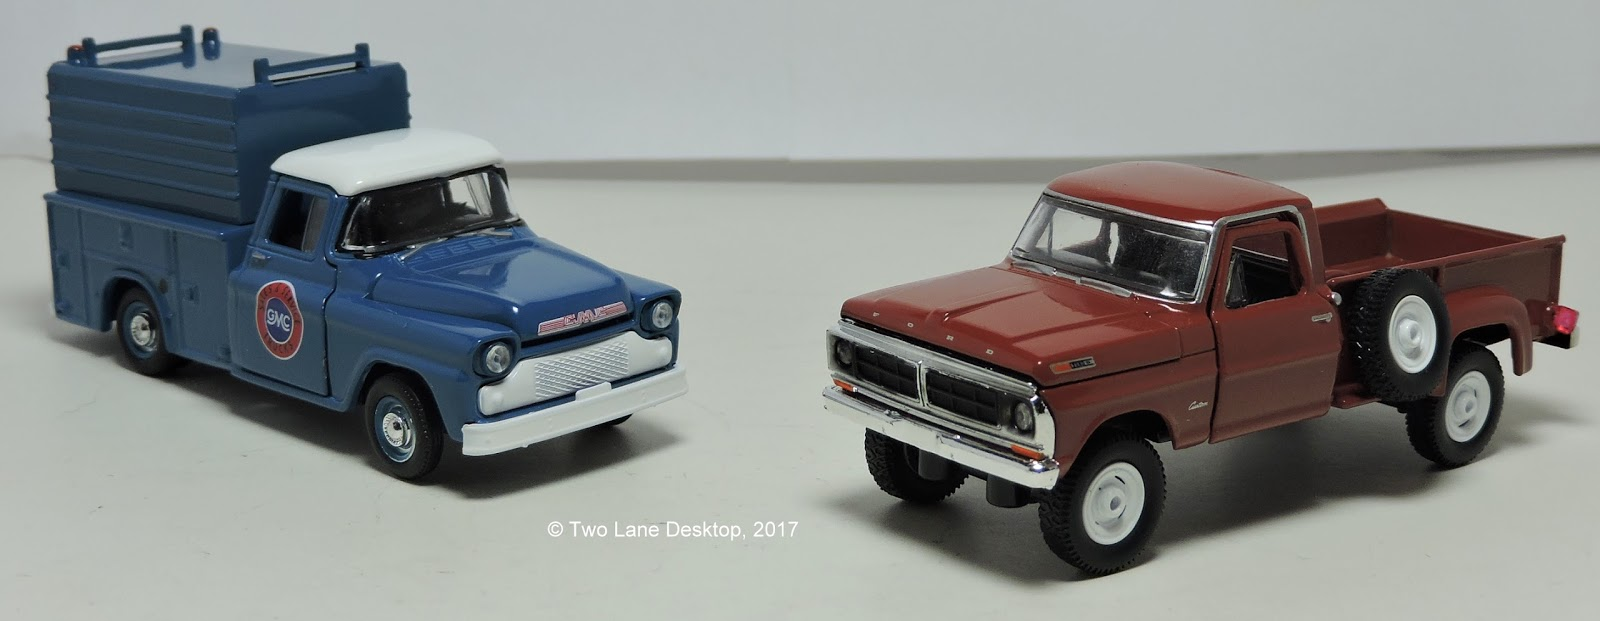 hight resolution of here s a look at a few good m2 machines truck castings with their first time bed variations the gm trucks have already gotten the utility trailer package